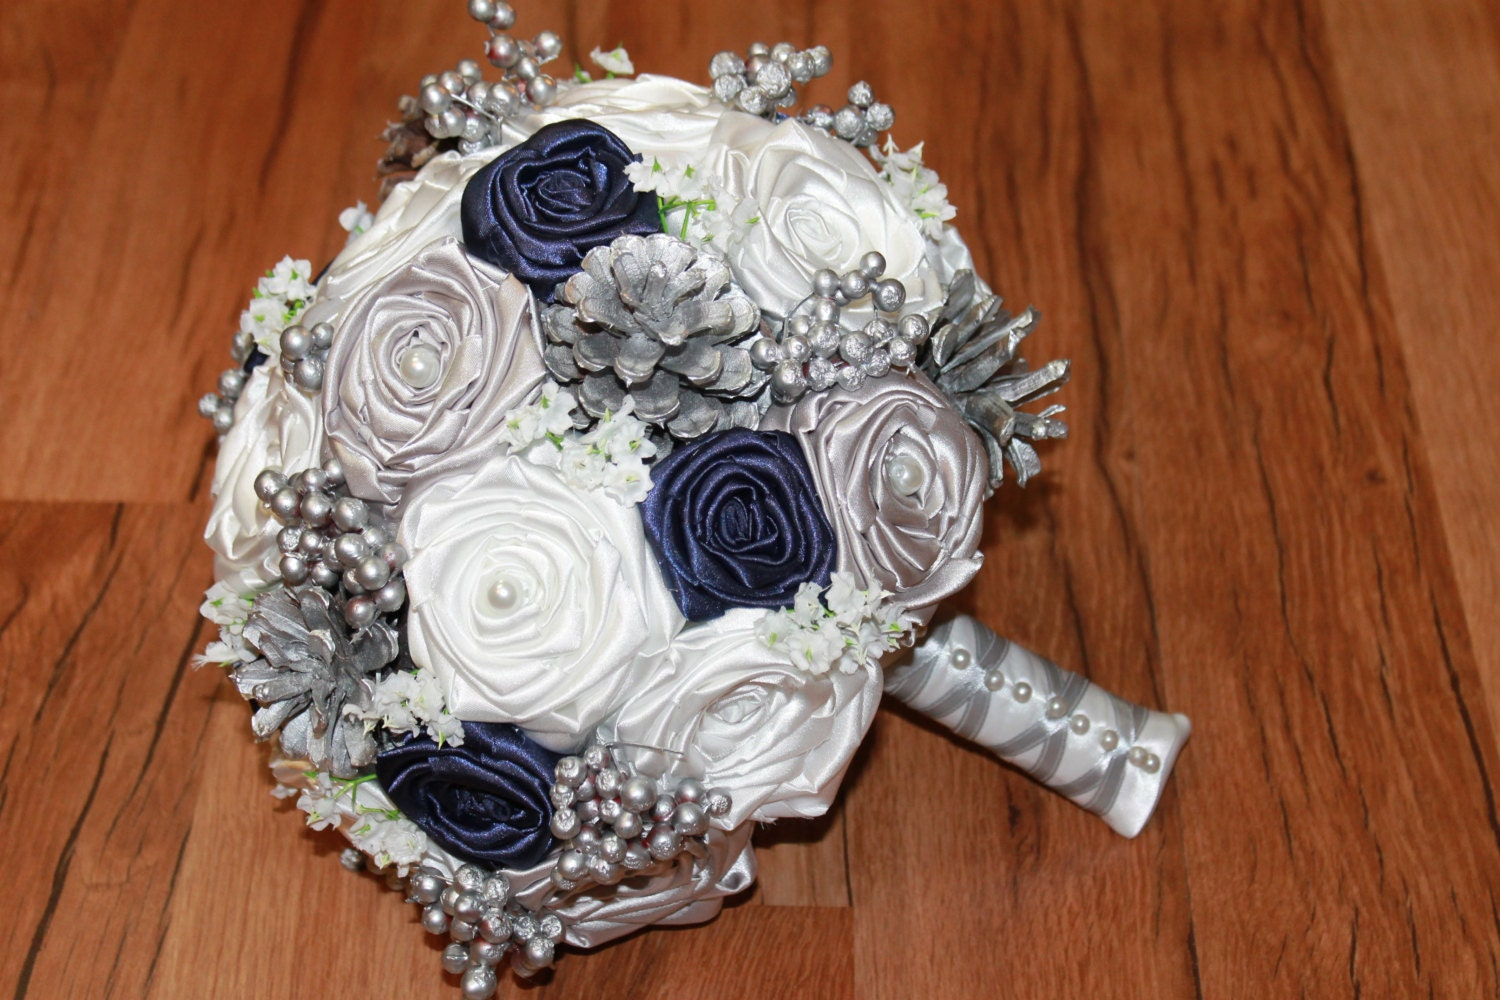 Pine Cone Wedding Table Decorations Pine Cone Bouquet Etsy